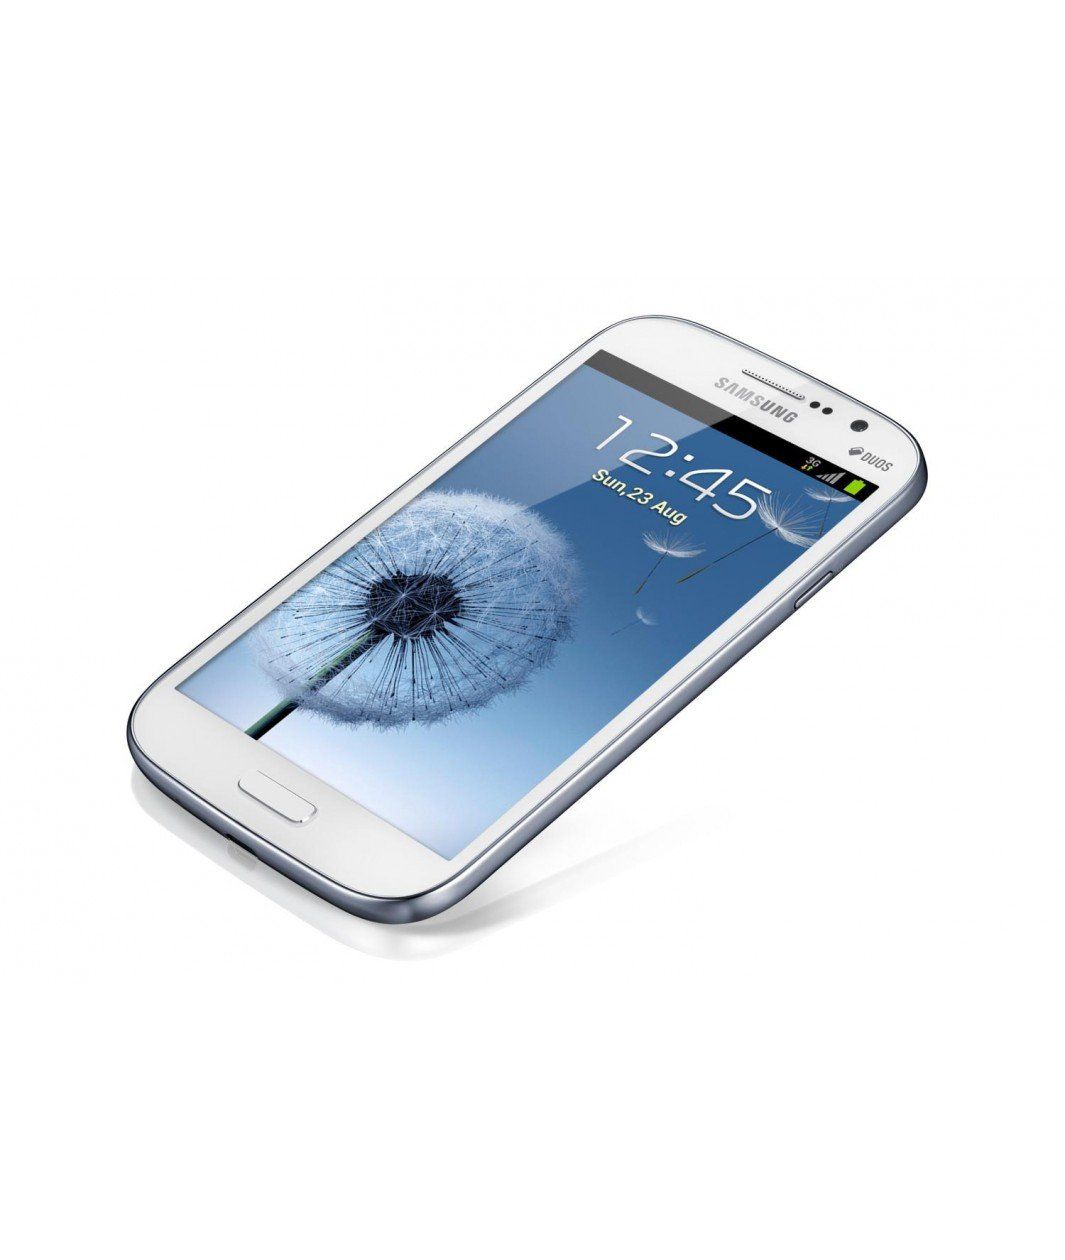 Samsung GT-I9082 Galaxy Grand Duos 8Gb Factory Unlocked, Android 4.1.2 - White